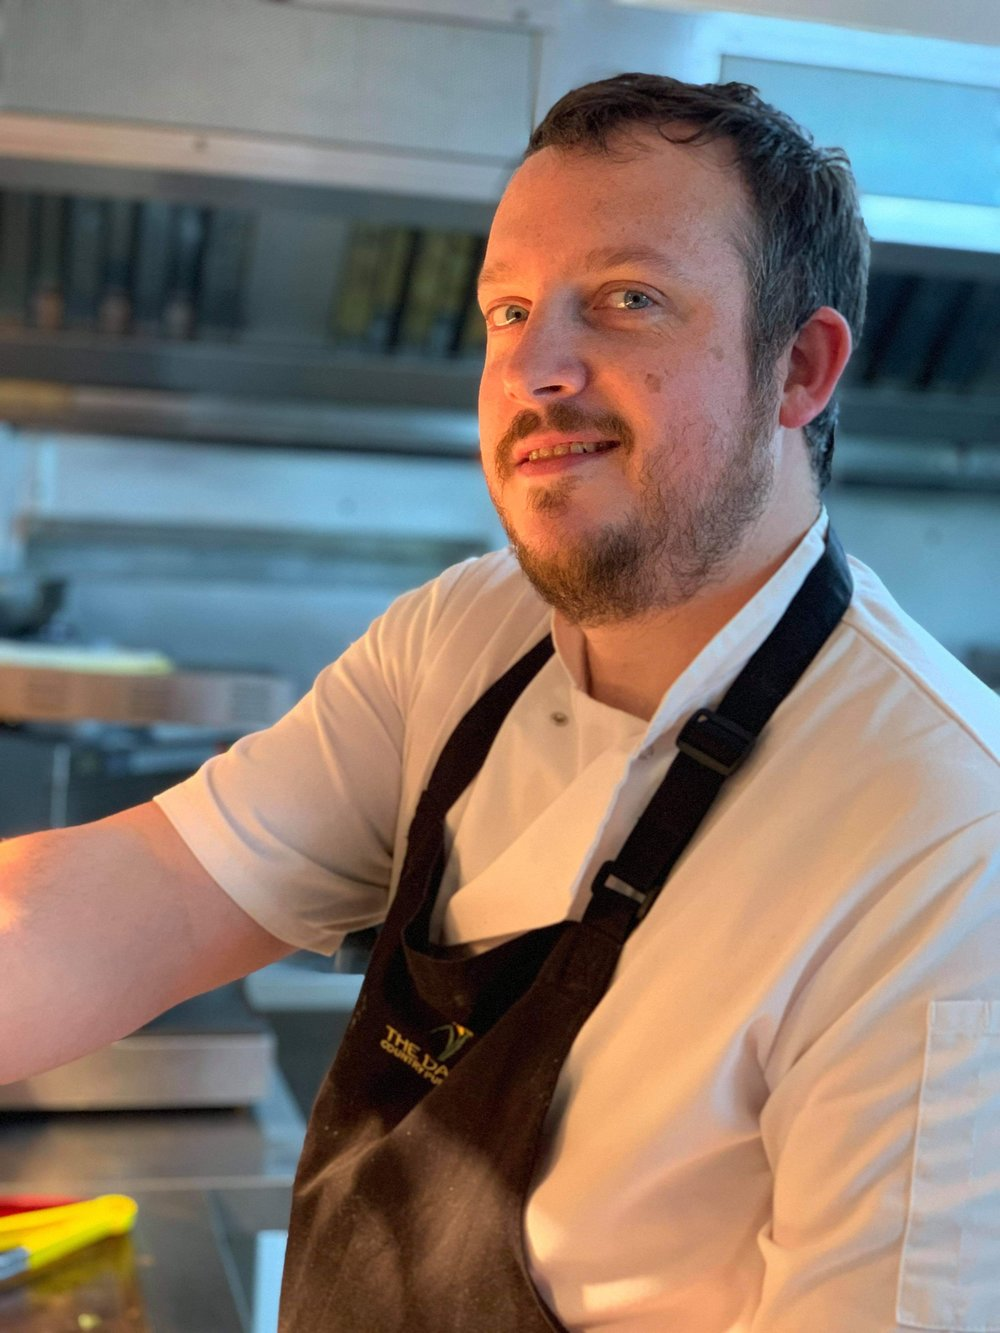 Mark Edwards (Head Chef)   Meet Mark, our Head Chef here at The Daffodil. Originally from Aberystwyth began cooking at age 16 in local restaurants. He then decided to move to Cardiff to further pursue his career. His most recent job was Head Chef of an AA Rosette Pub in the Vale of Glamorgan. We are excited to have Mark as part of the Daffodil family and with the direction that Mark is continuing to take the menus on offer at The Daffodil.